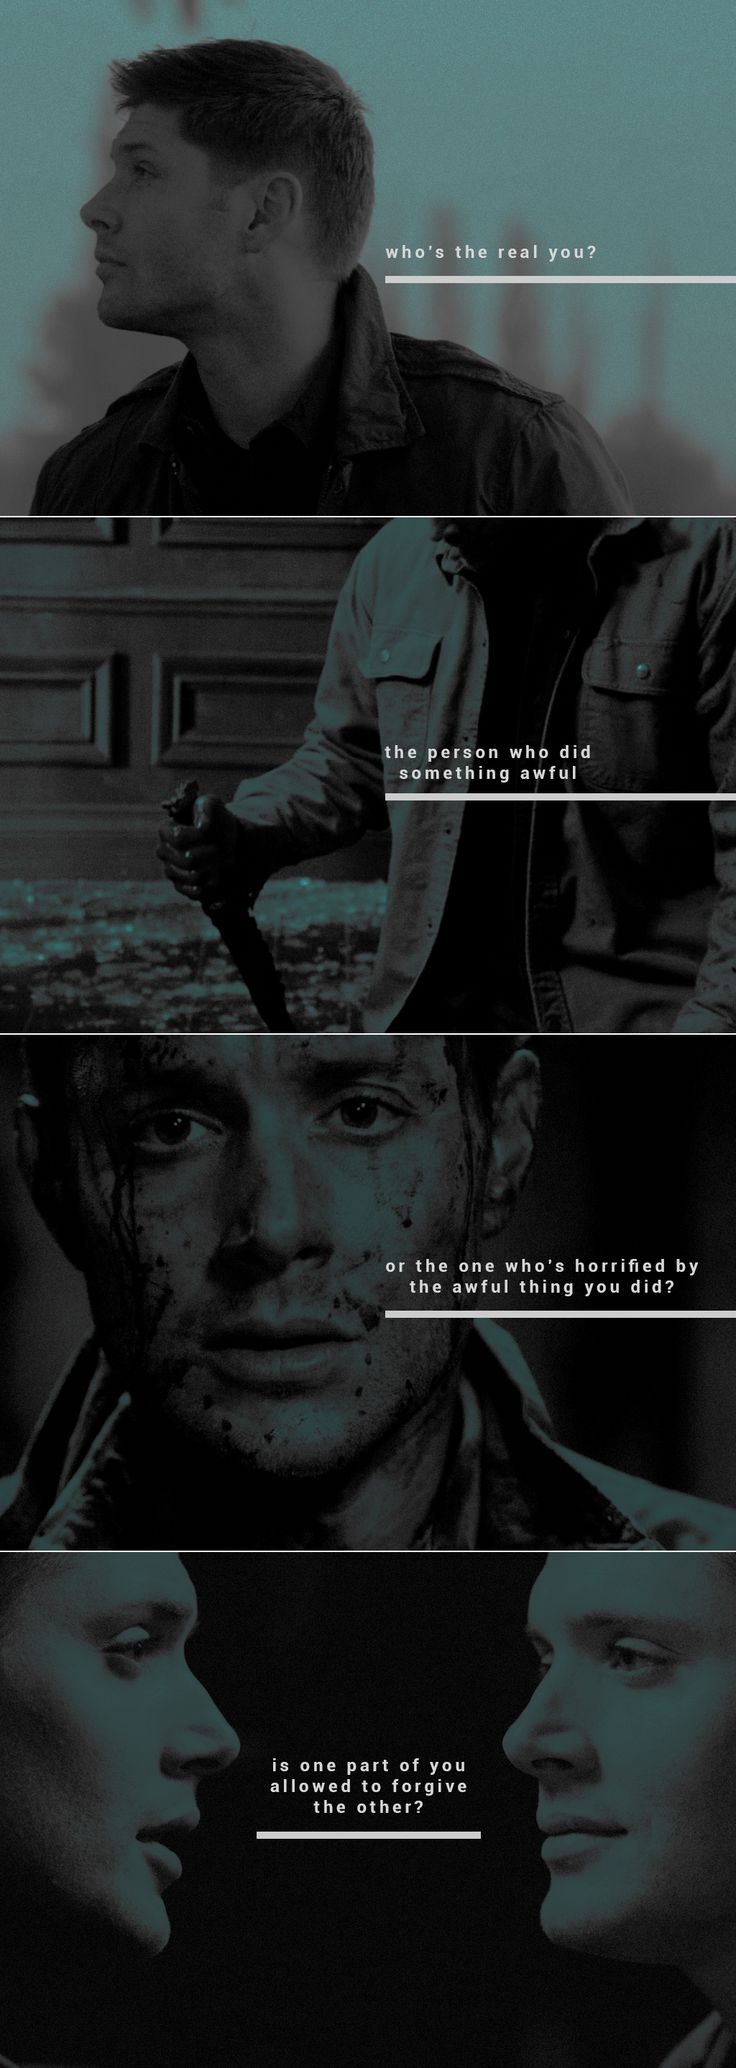 Dean Winchester: Who's the real you? The person who did something awful or the one who's terrified by awful thing you did? Is one part of you allowed to forgive the other? — Rebecca Stead.